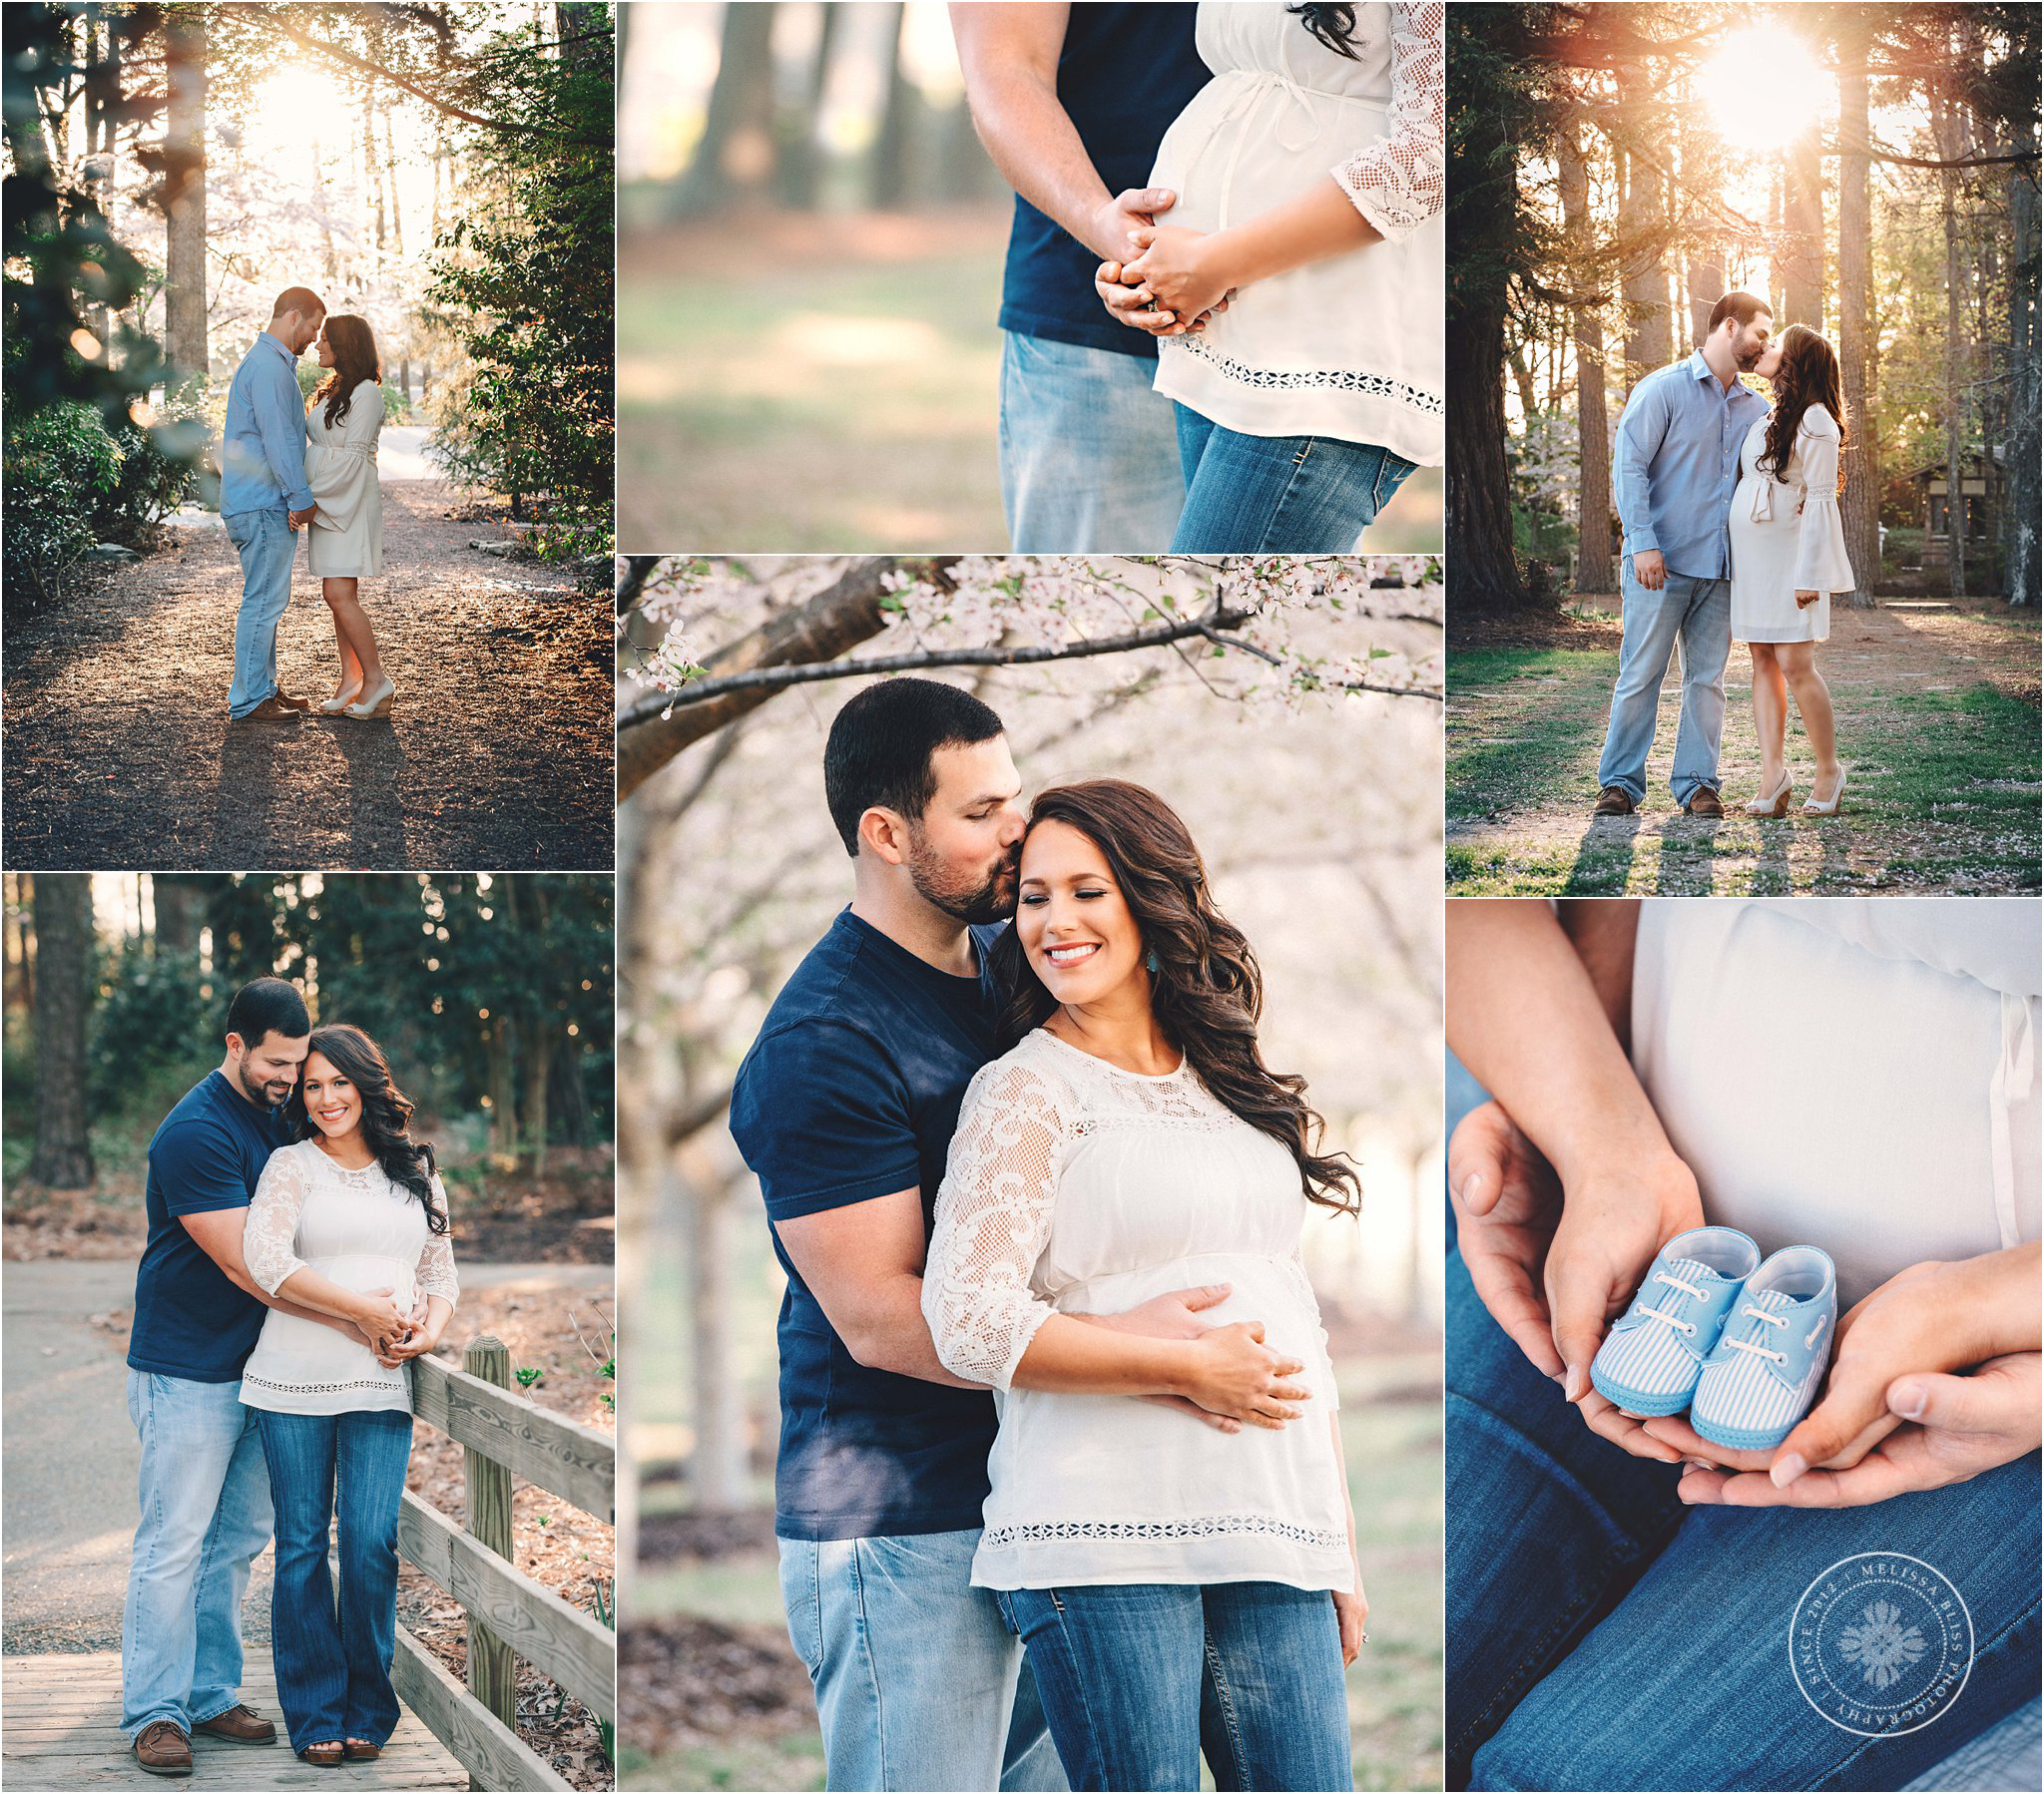 spring-maternity-inspiration-cherry-blossom-session-couple-posing-virginia-beach